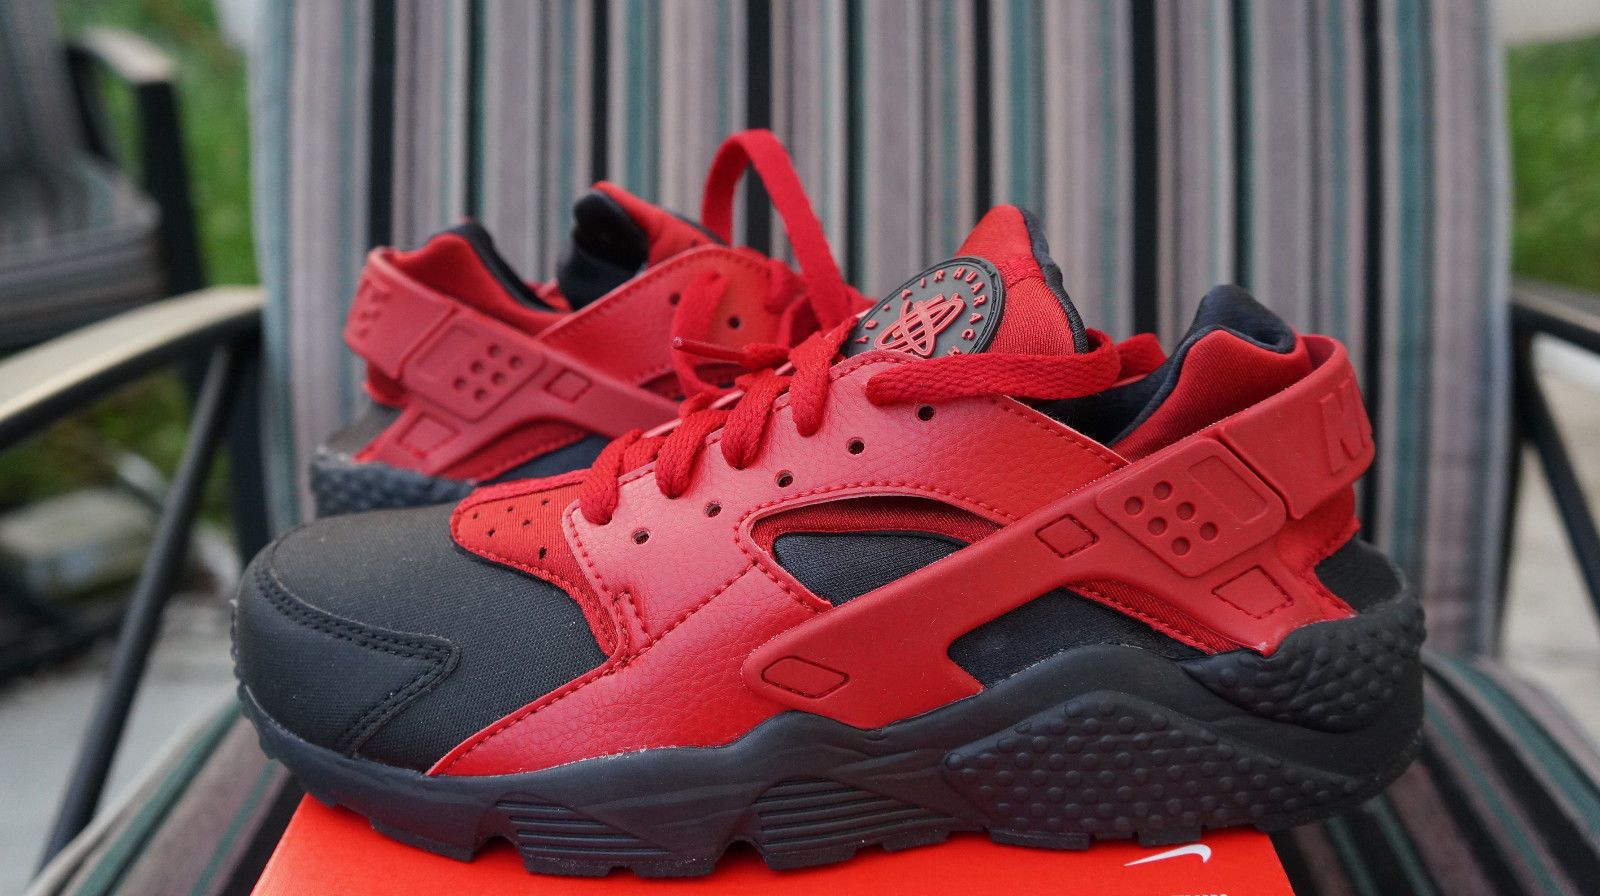 NIKE AIR HUARACHE RUN PREMIUM Noir GYM Rouge | S N E A K S